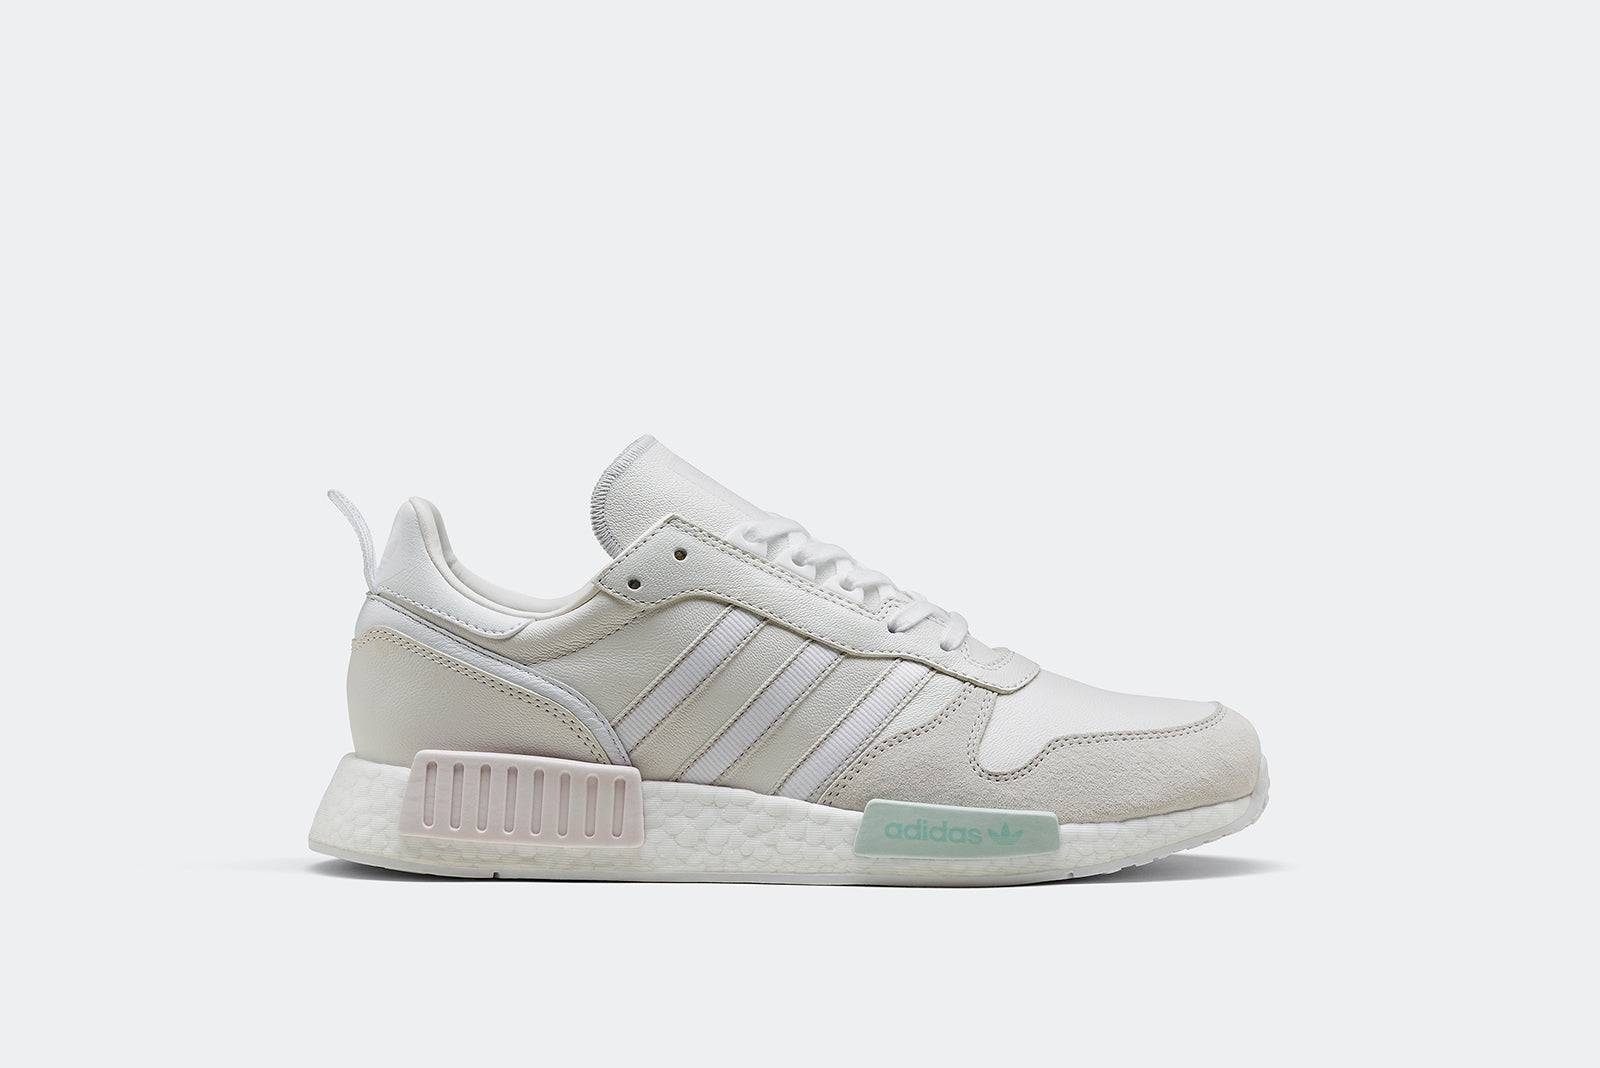 59a0c9f9389 adidas Originals Rising Star x R1  Never Made  G28939 CLOWHI FTWWHT GREONE  Price  £119.00. Launch  Sunday 18th of November ONLINE  23 00GMT